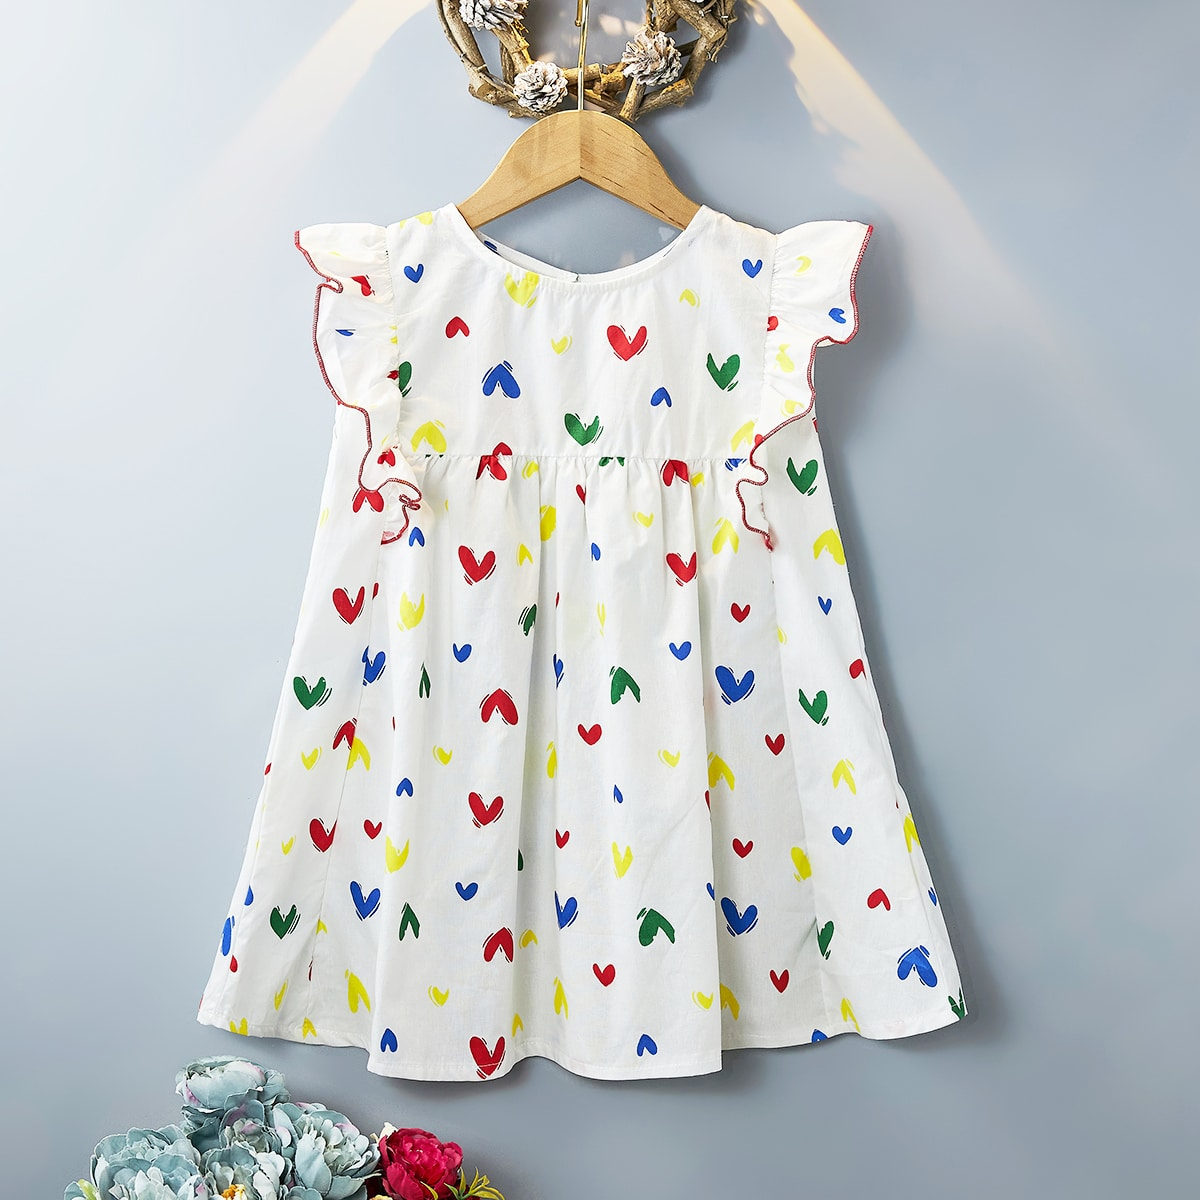 Toddler Girls Allover Heart Ruffle Smock Dress, SHEIN  - buy with discount